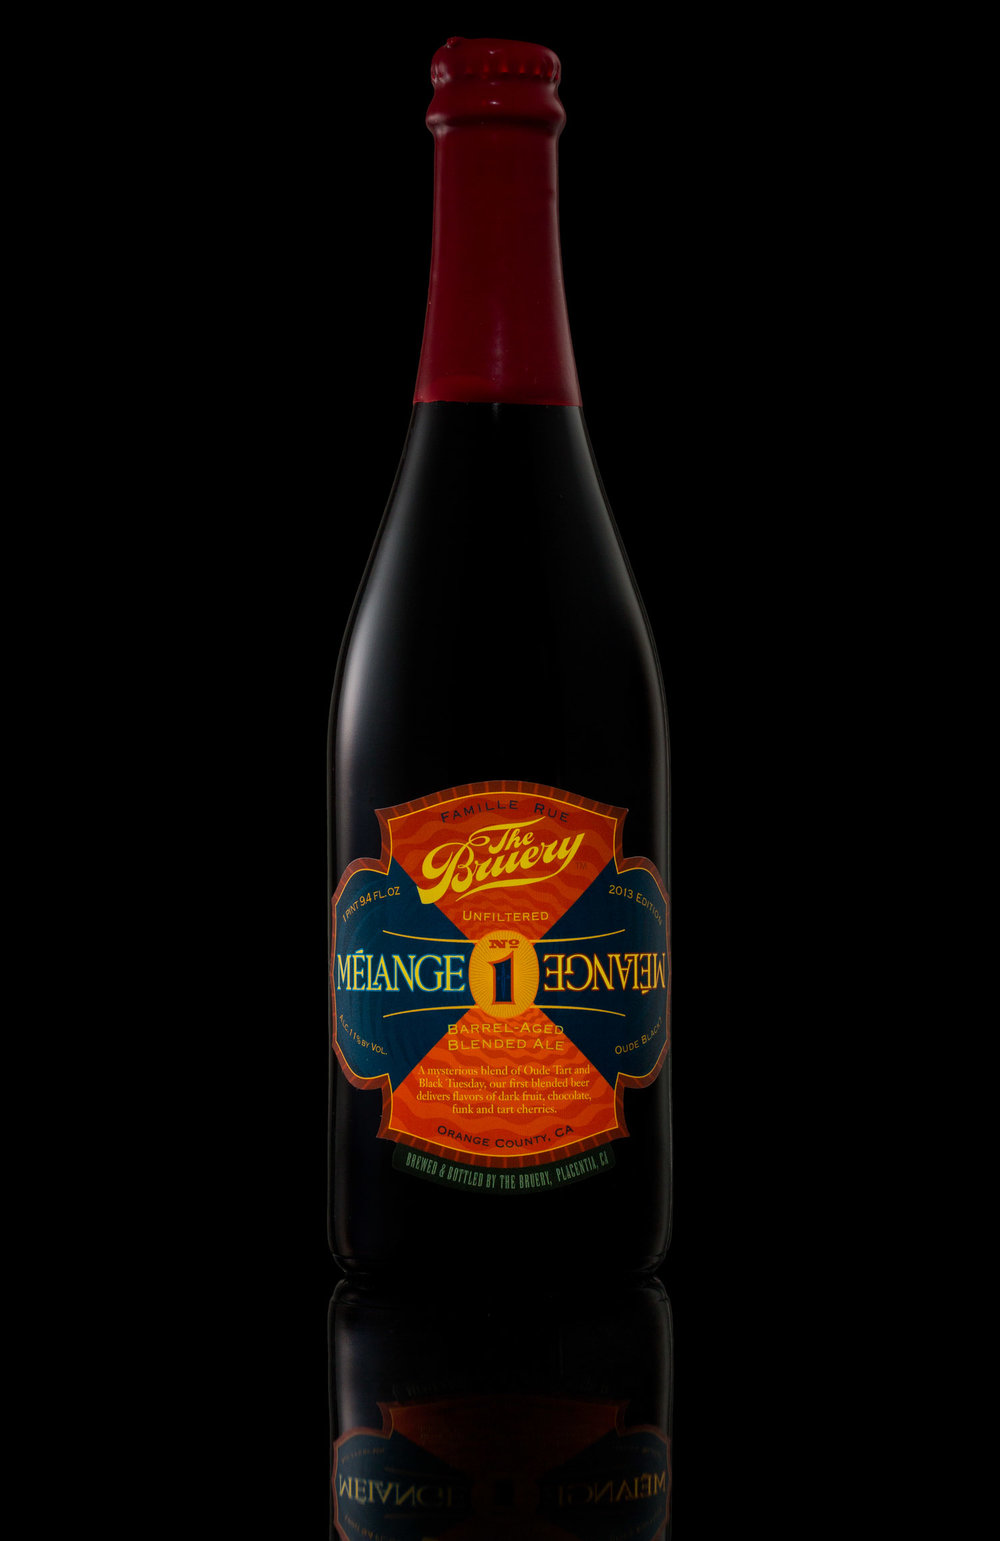 Melange No 1 by The Bruery, Orange County, CA